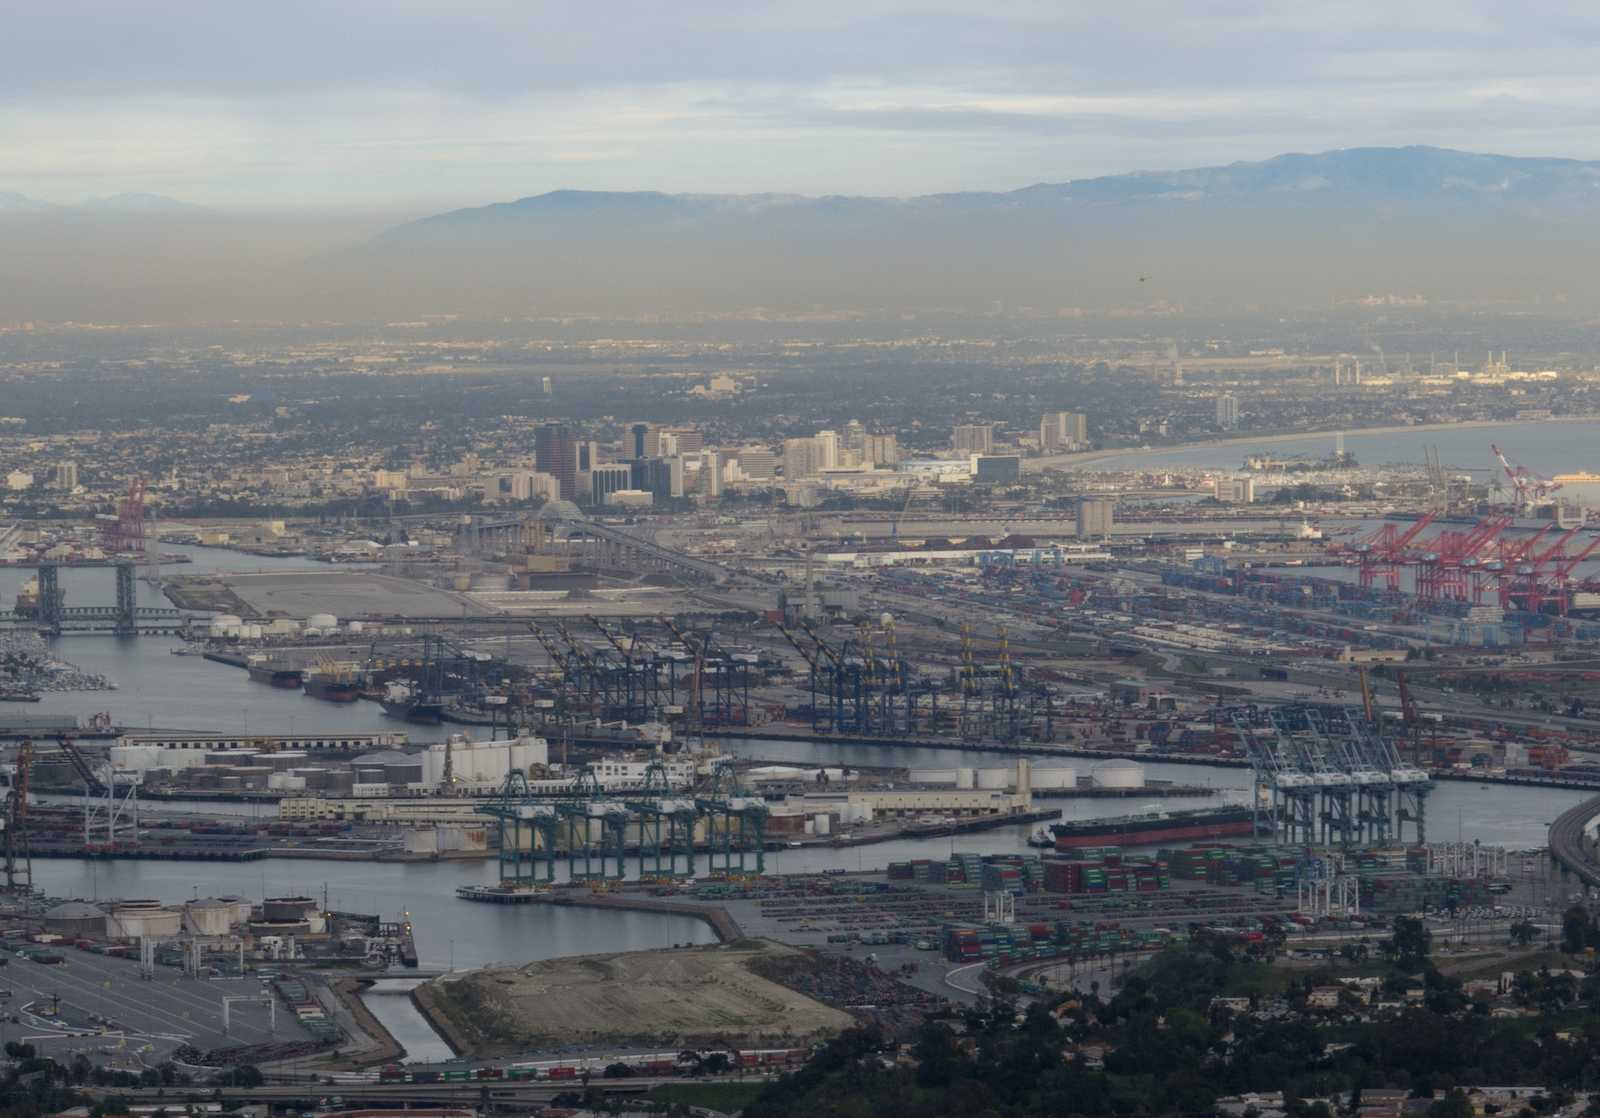 Air Pollution Falls At Long Beach Since 2005 As Green Efforts Mount